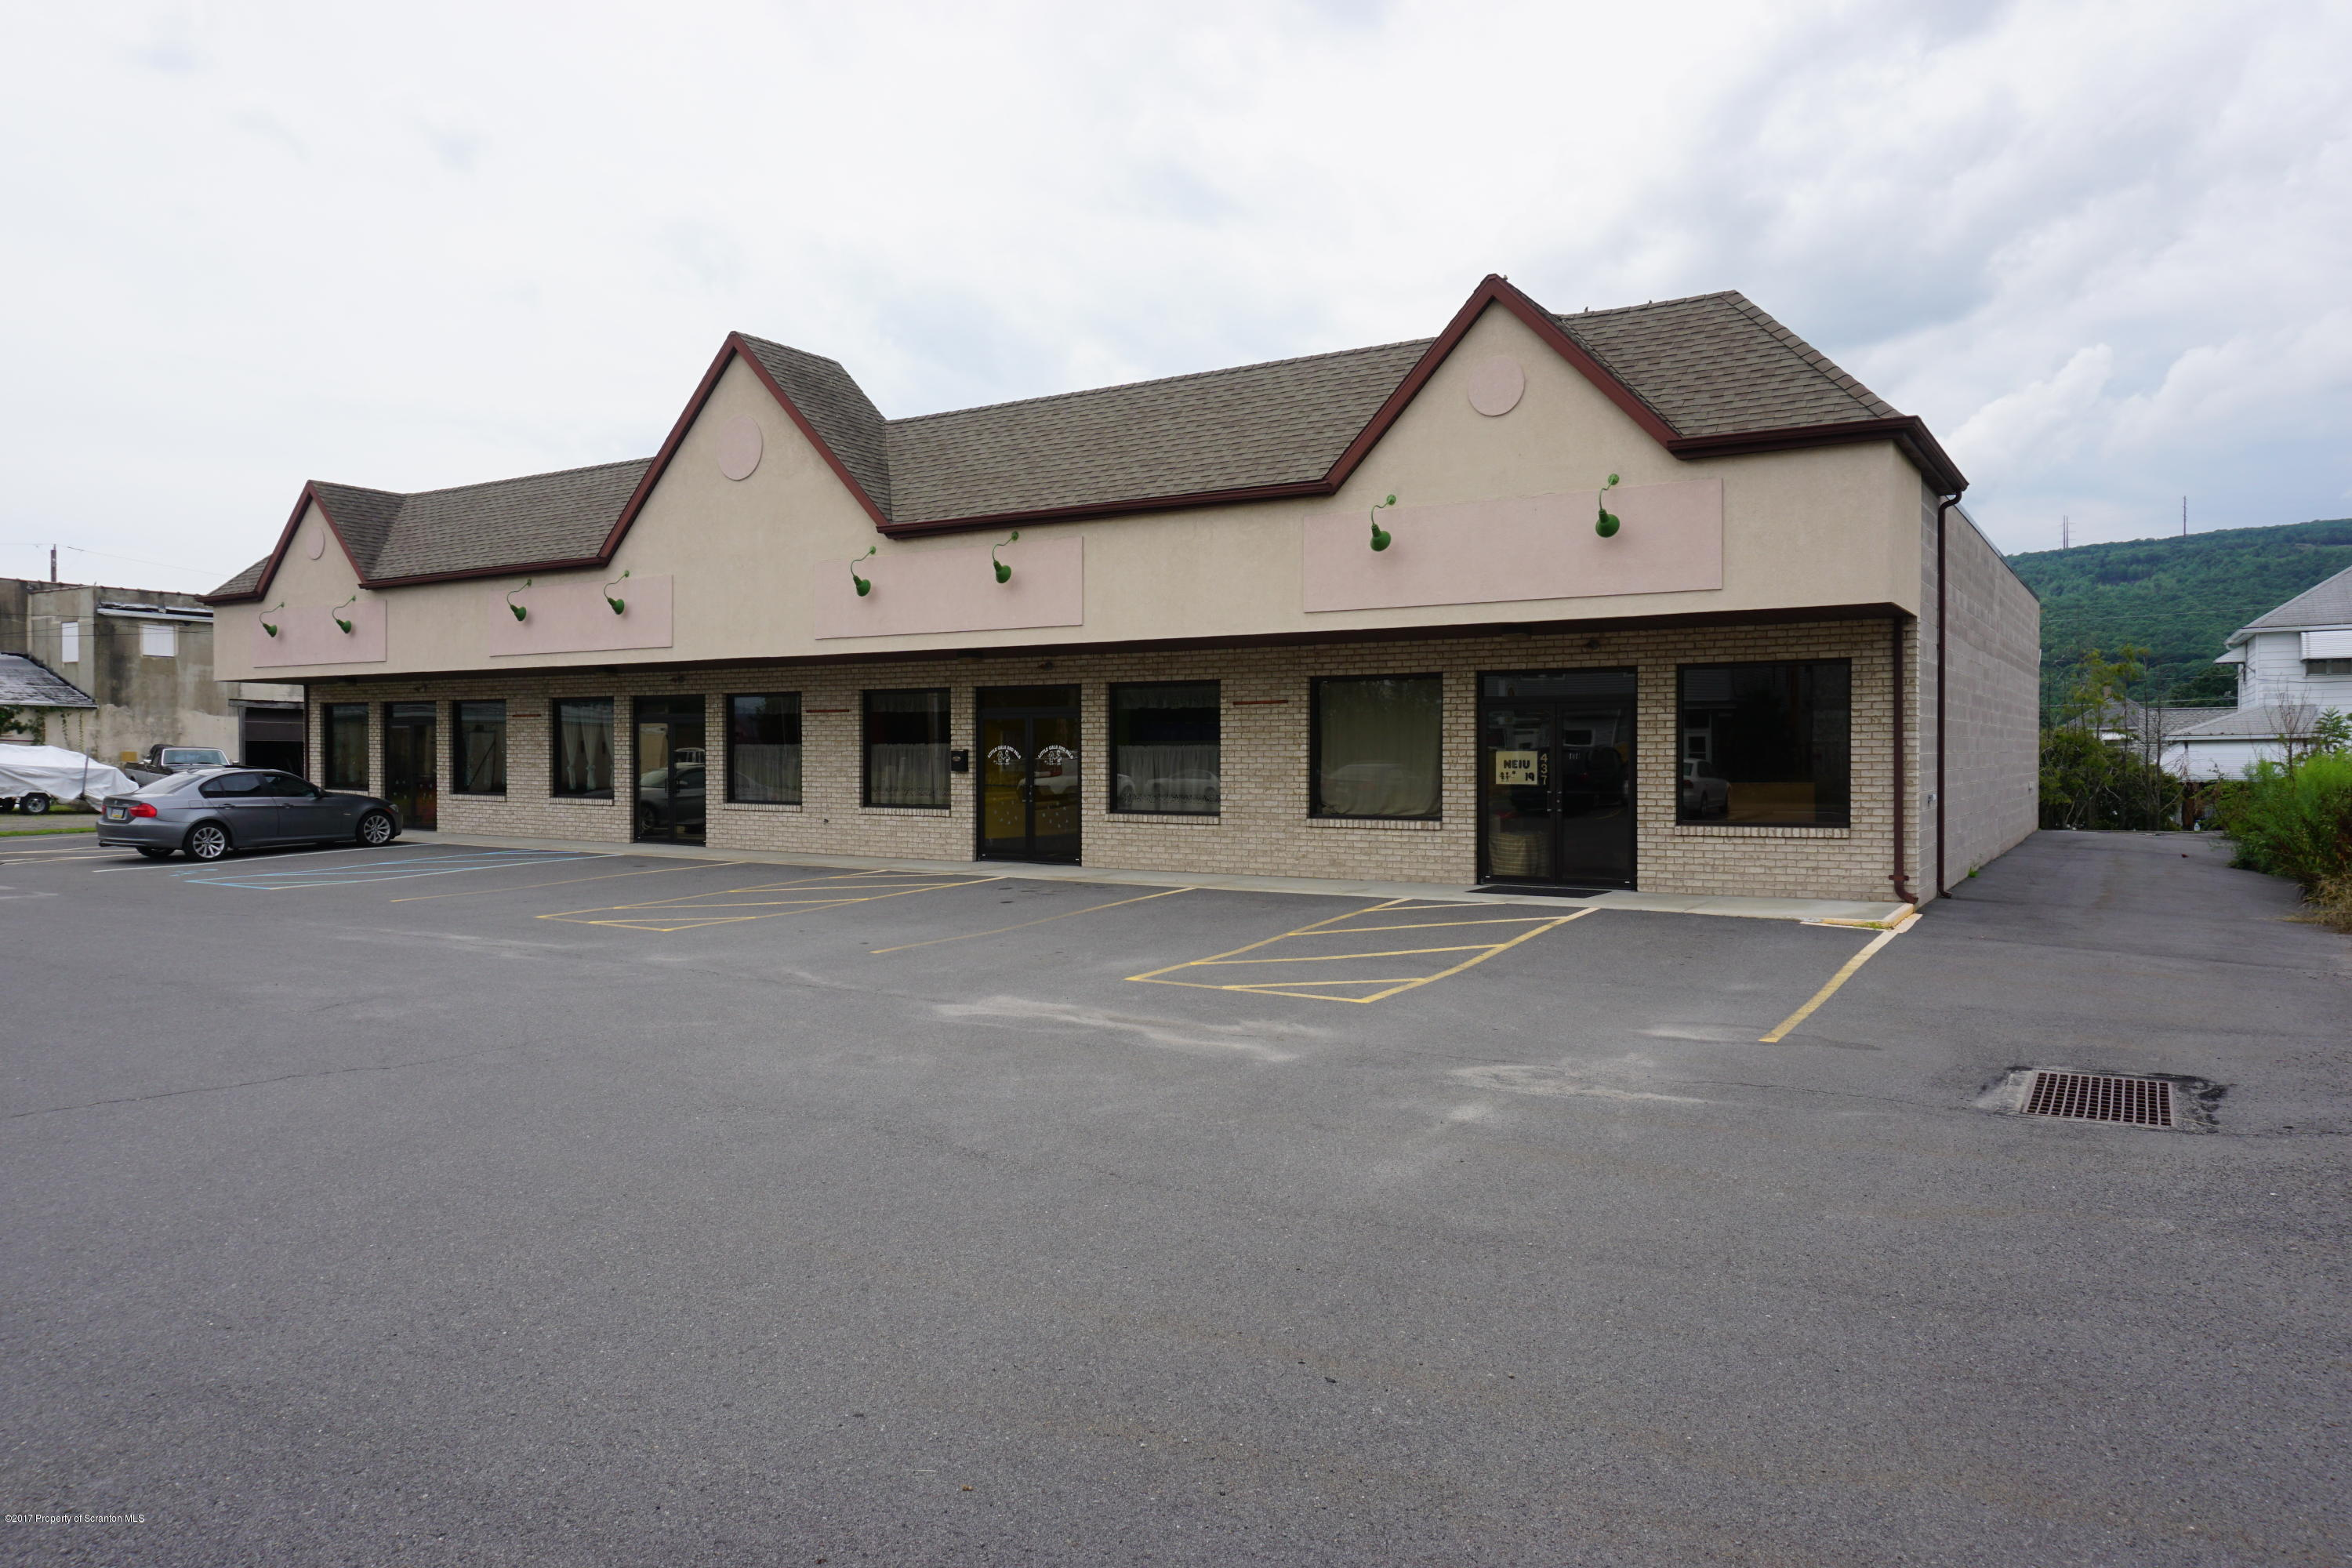 437 Main St, Eynon, Pennsylvania 18403, ,1 BathroomBathrooms,Commercial,For Lease,Main,17-3633